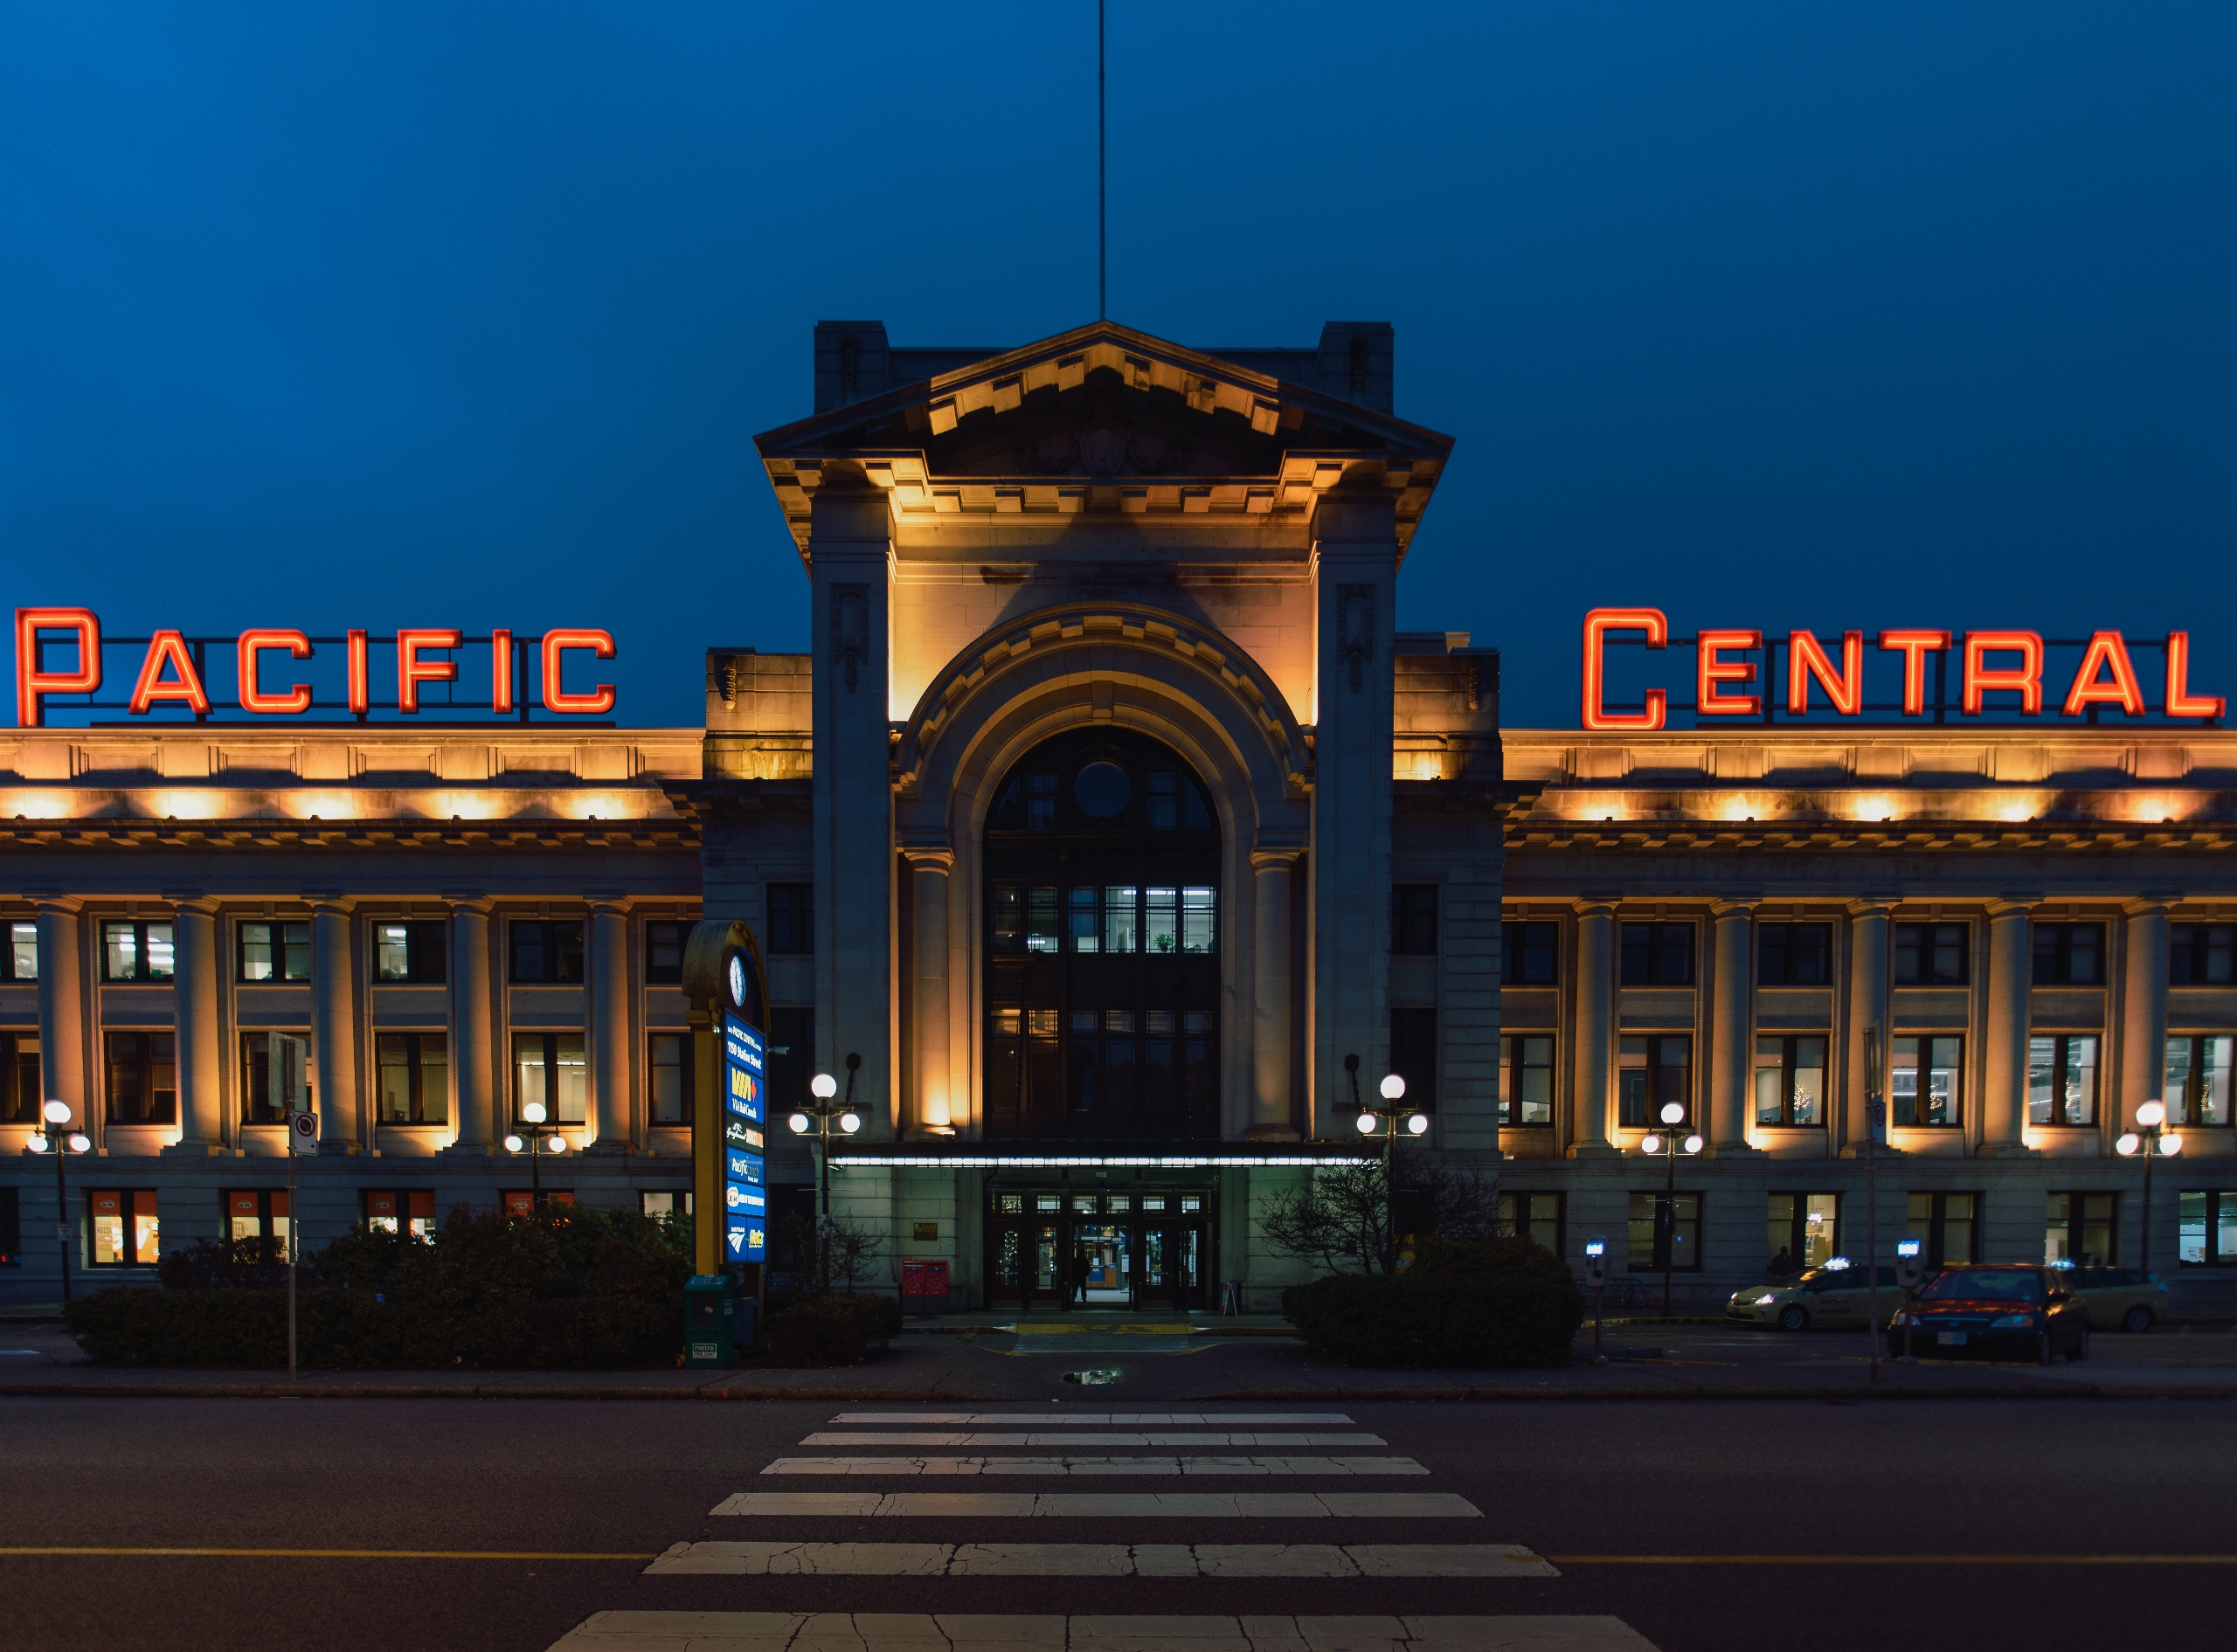 Pacific Central, evening Quick  - rhinocerous | ello